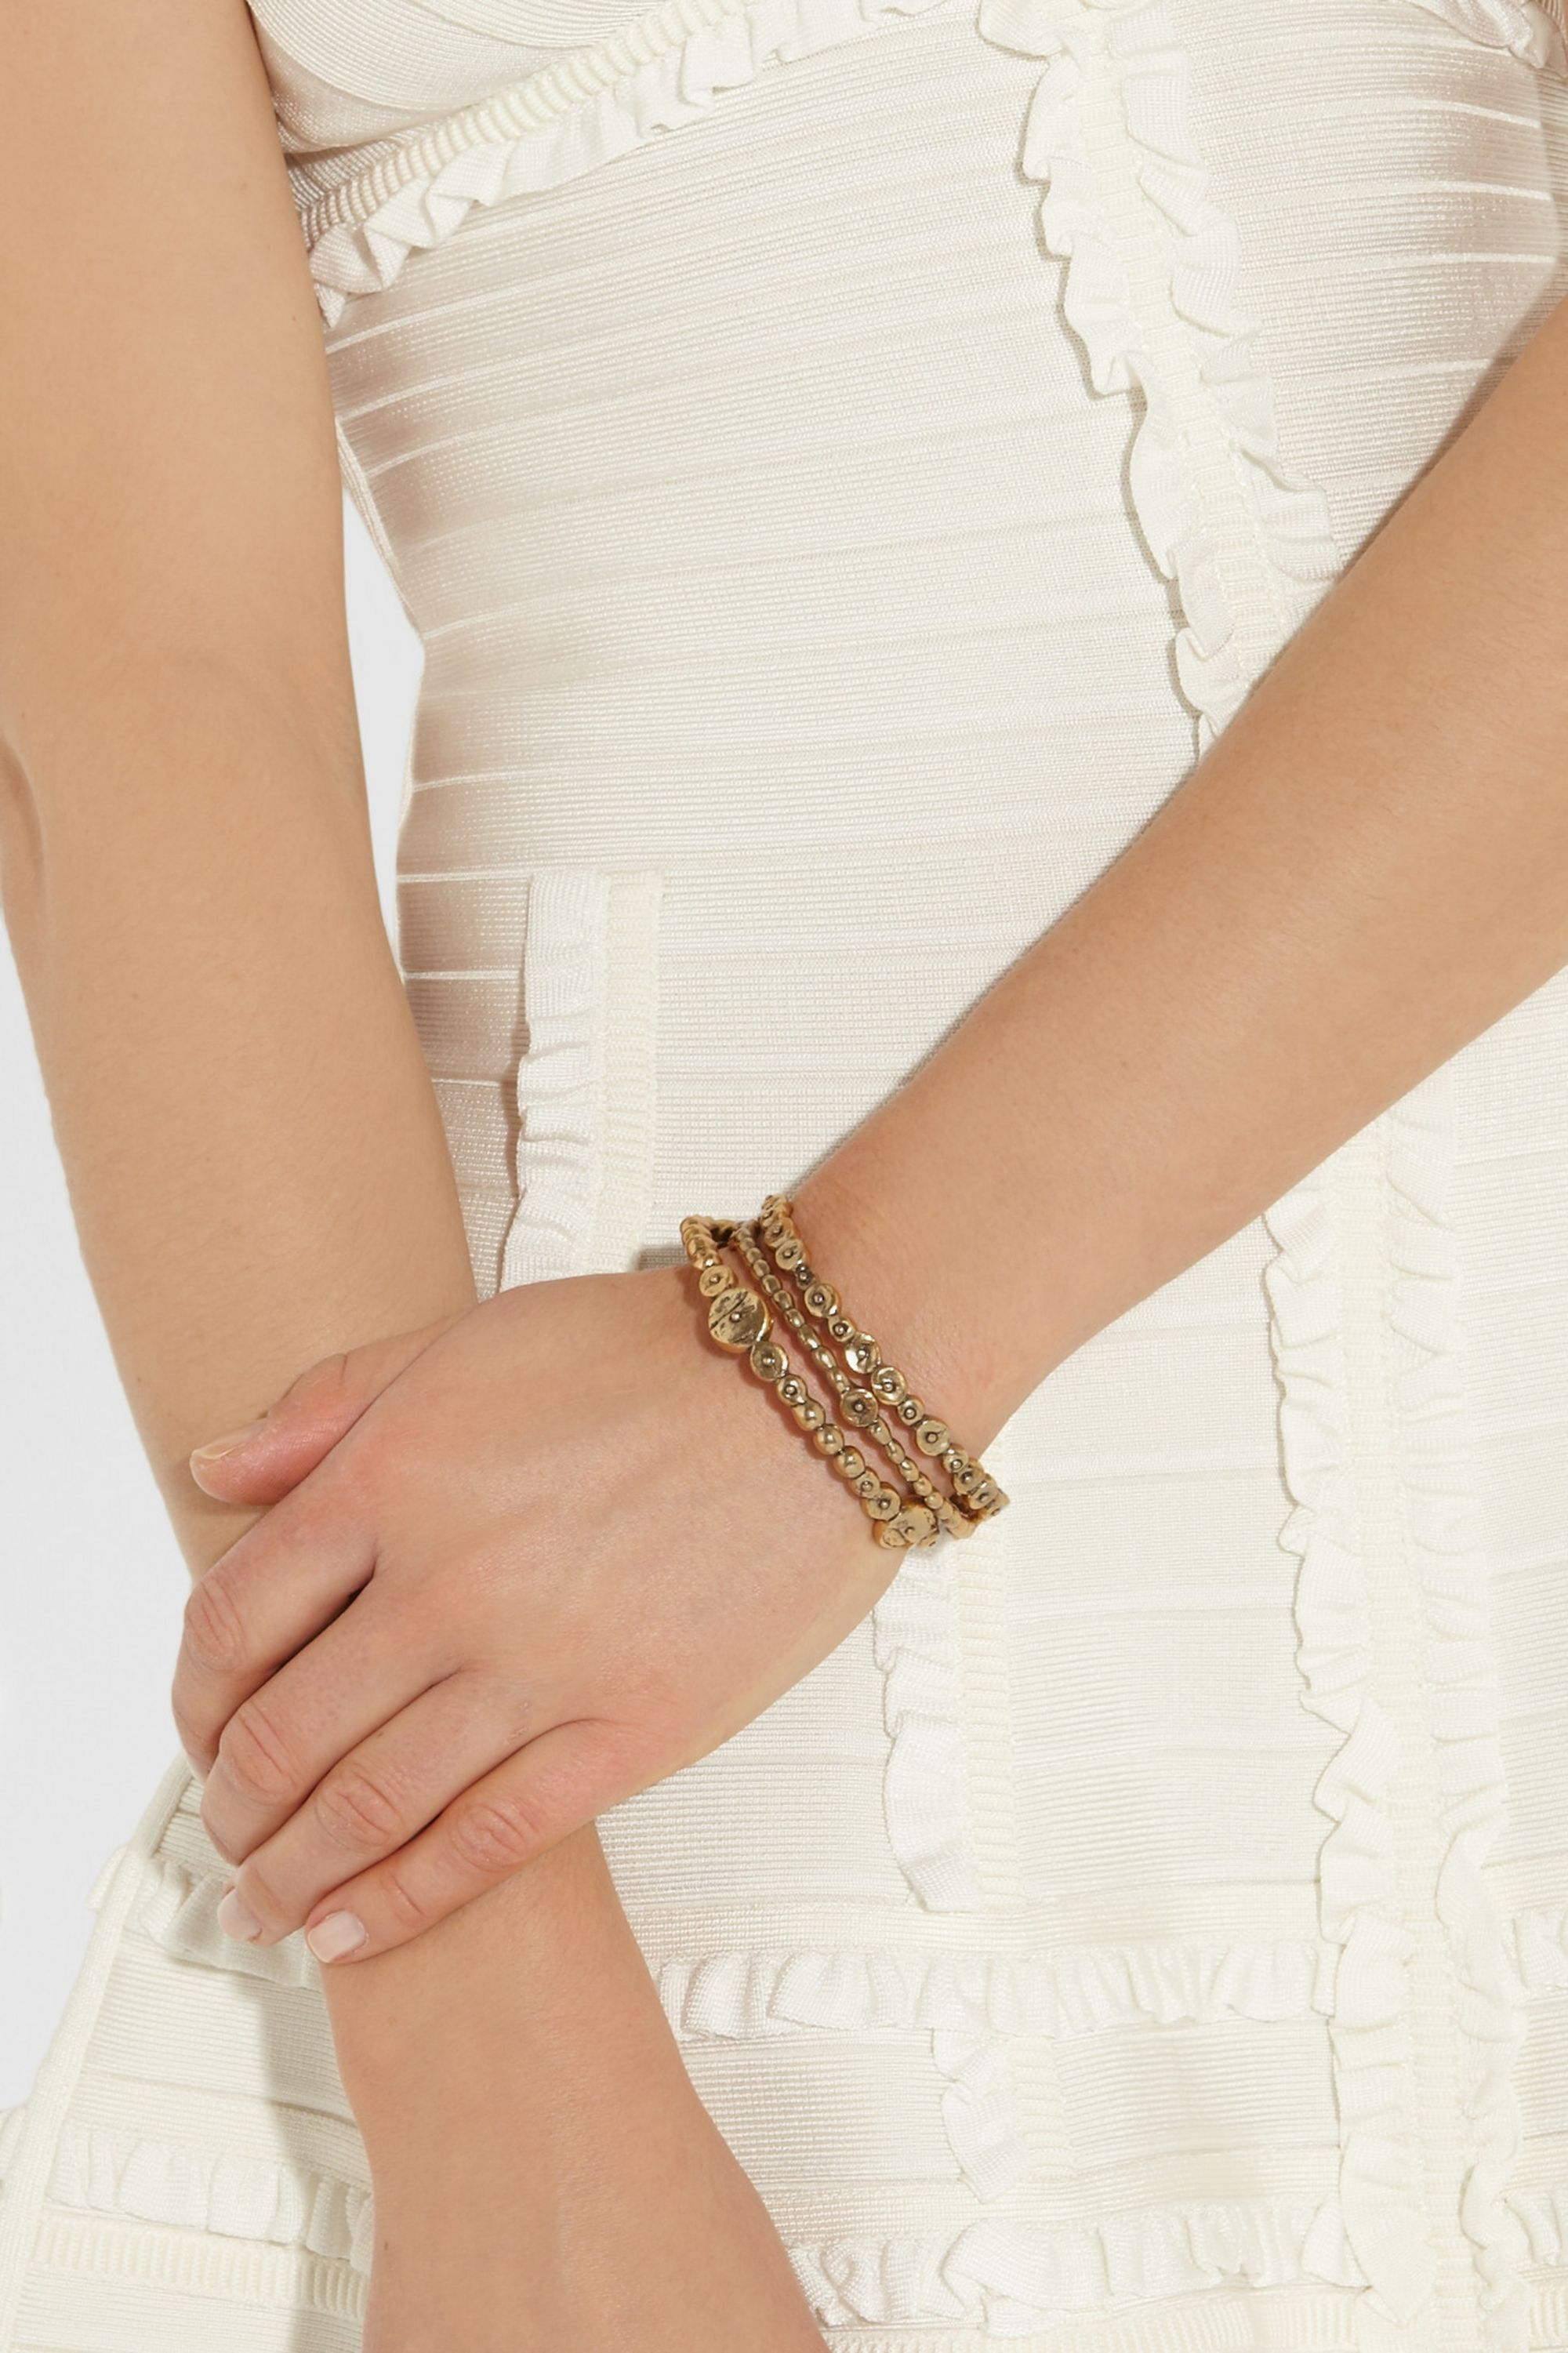 Oscar de la Renta Set of three gold-plated bracelets